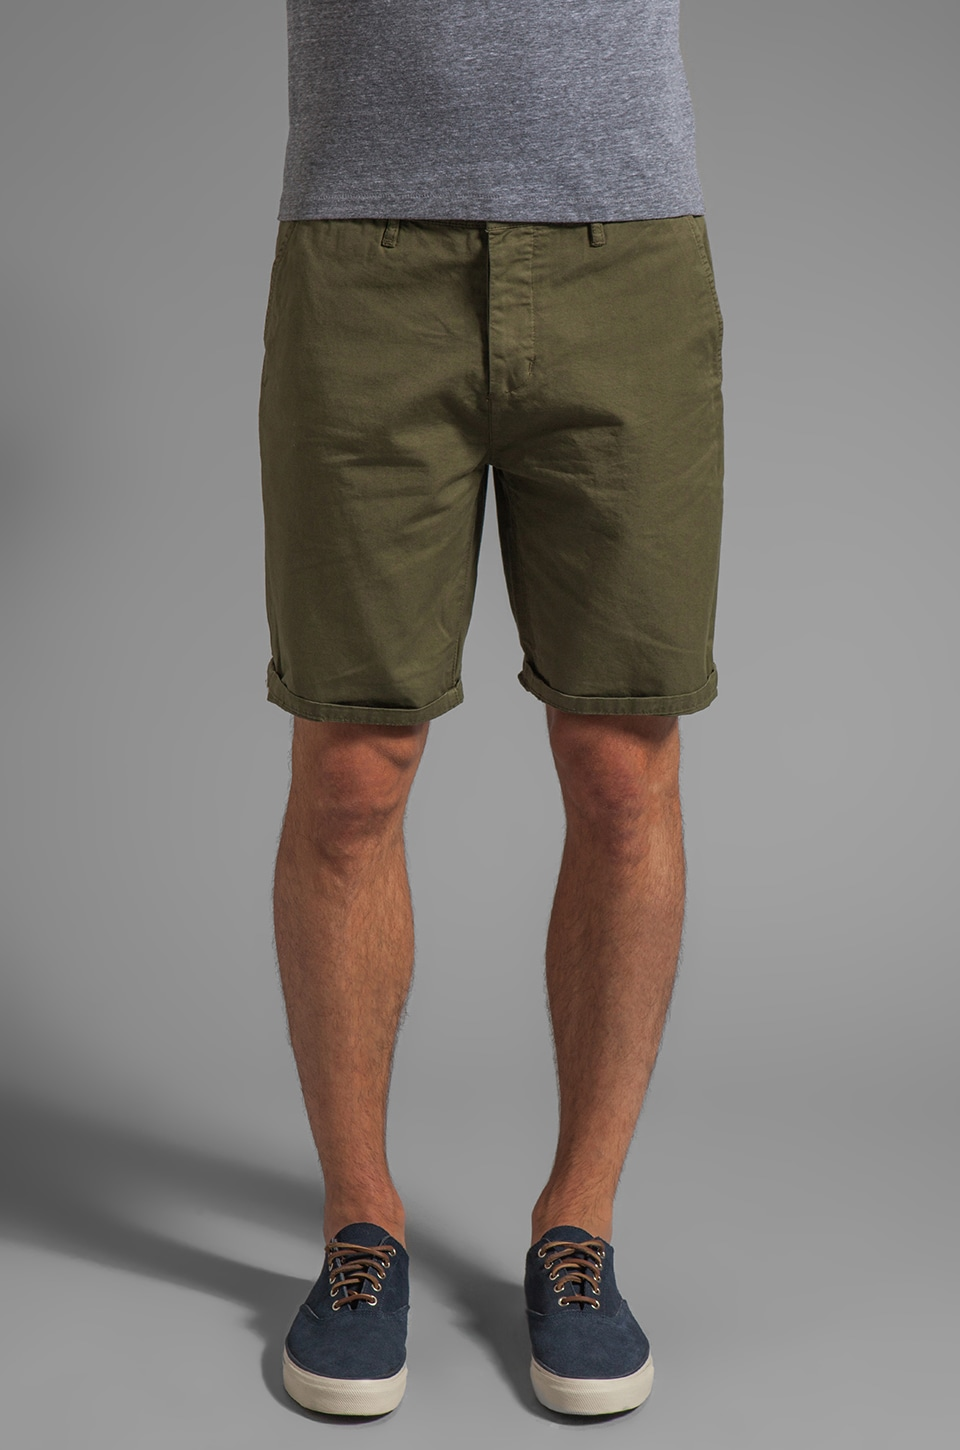 Obey Classique Short in Avocado